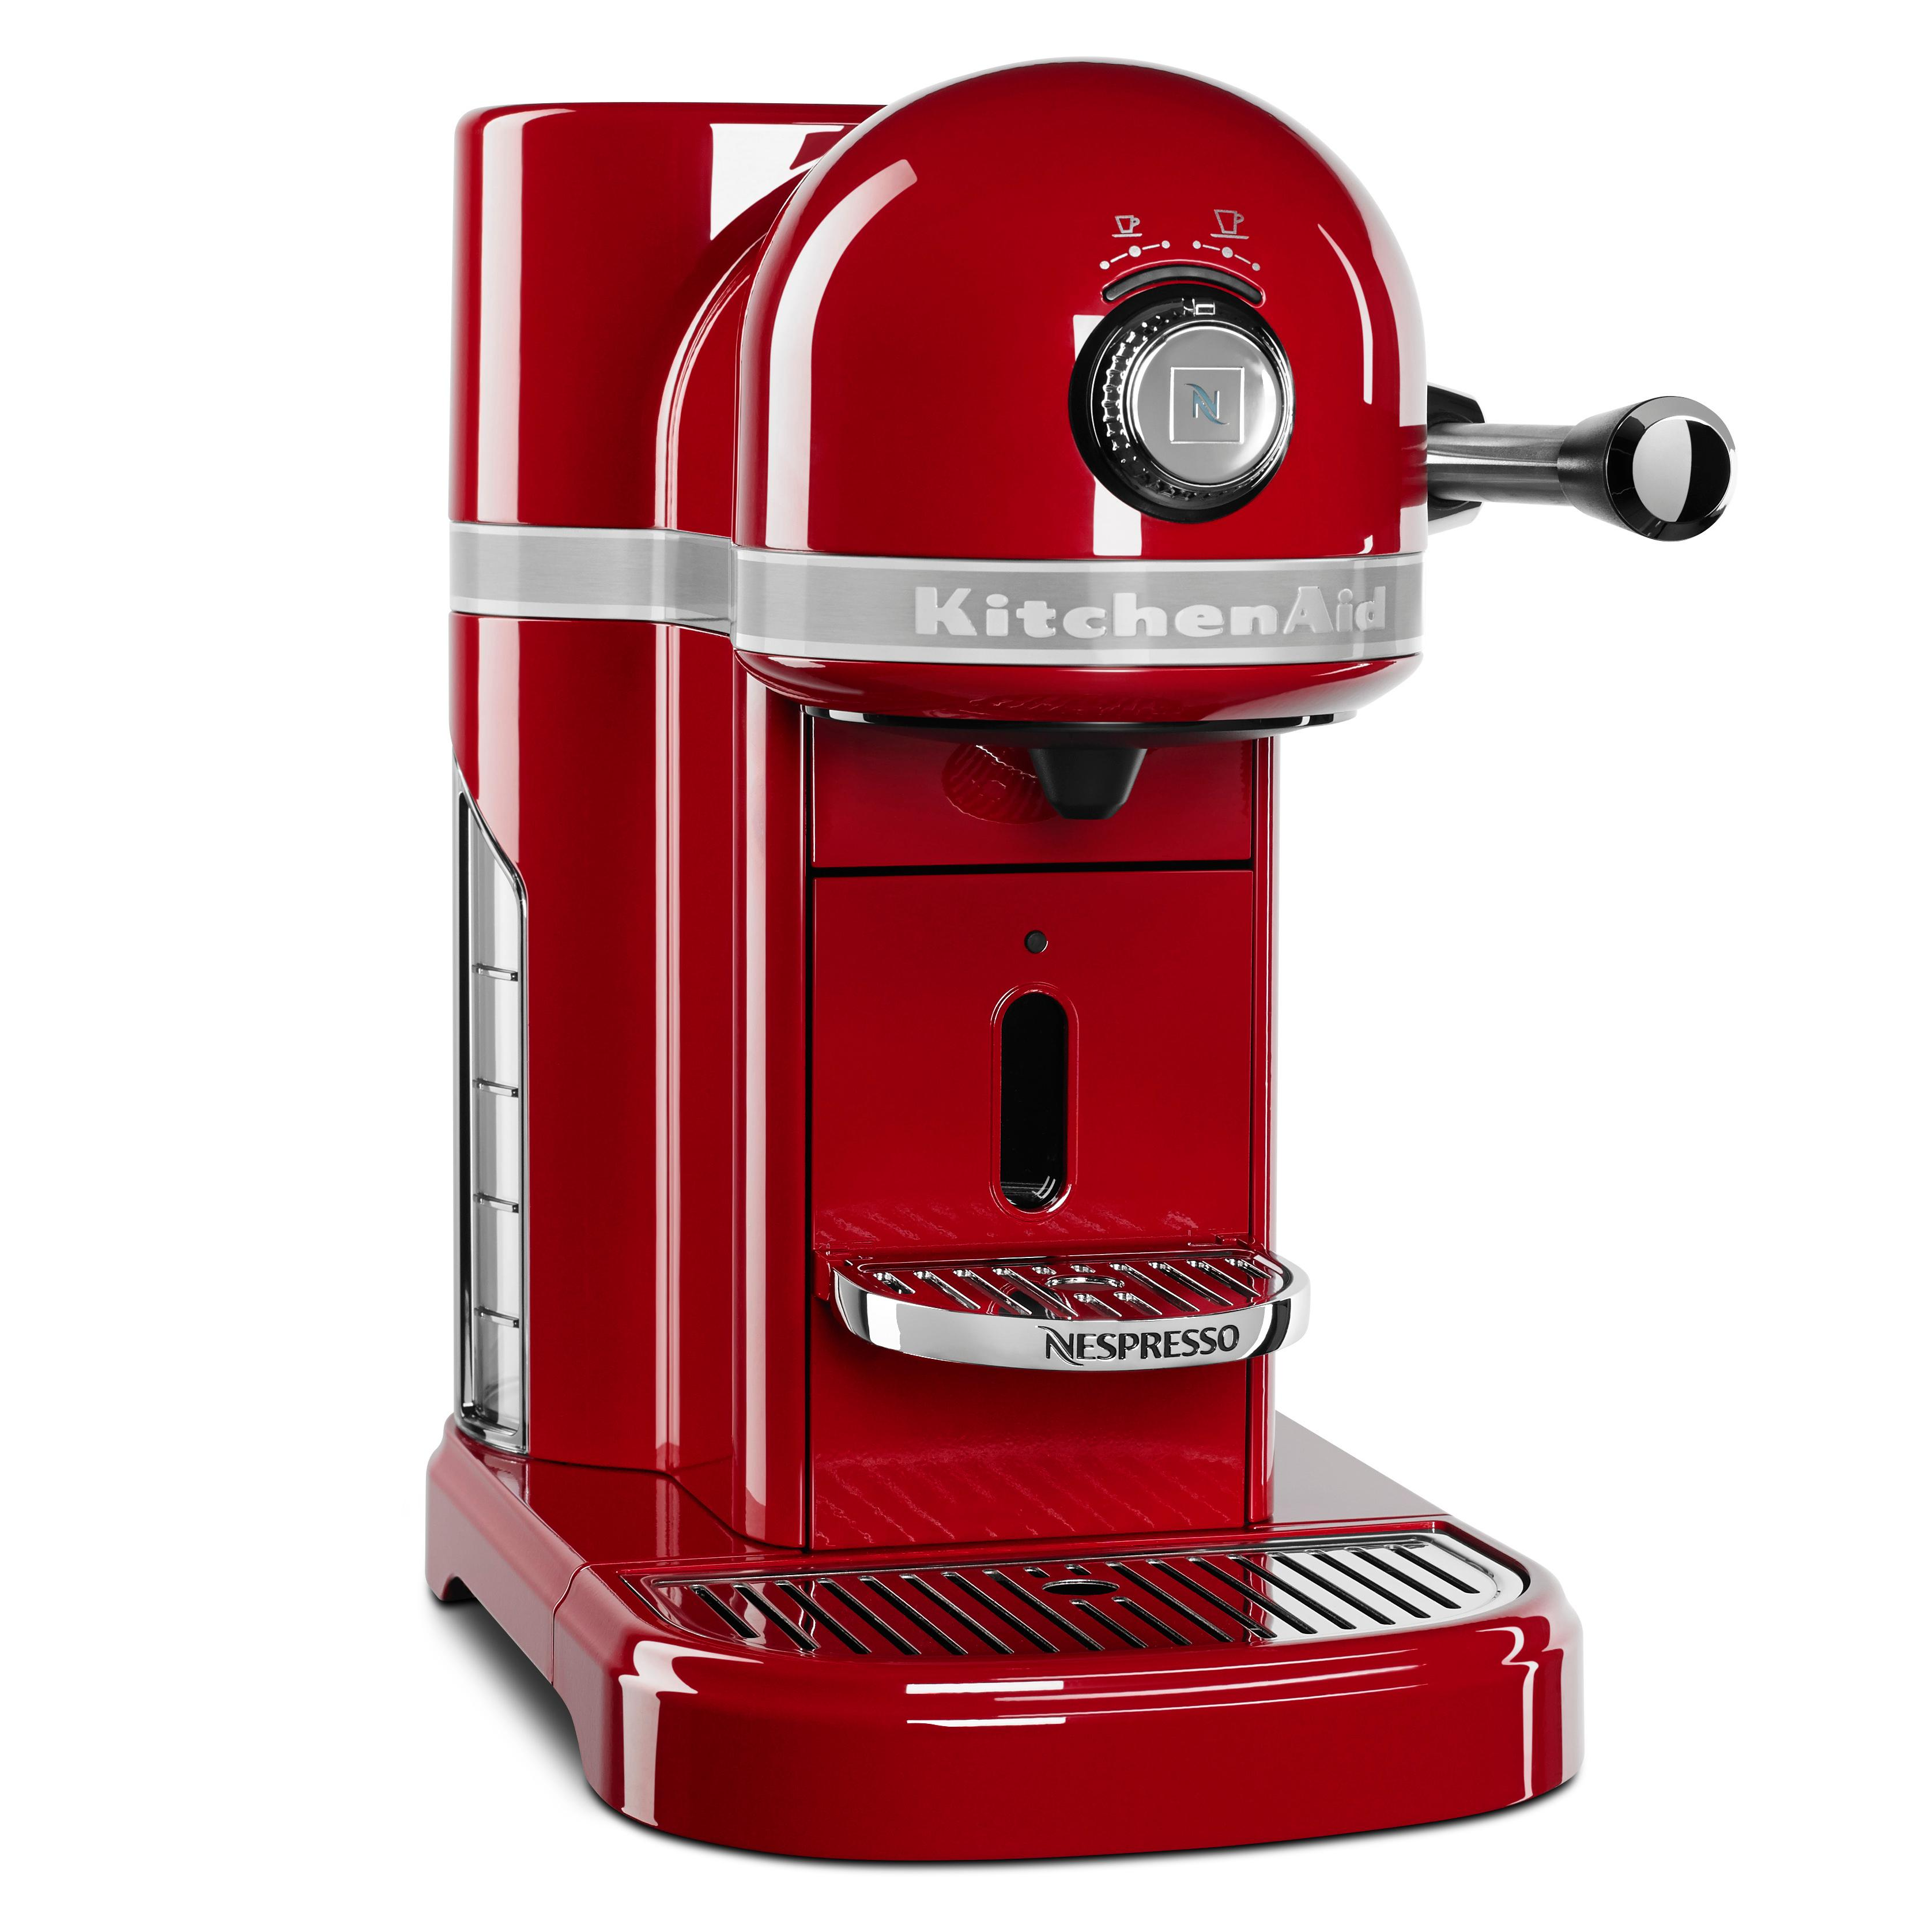 Amazon.com: KitchenAid KES0503FP Nespresso, Frosted Pearl: Kitchen on ebay home, large hobart mixer, ebay ipod touch, ebay sunbeam mixer, ebay kitchenaid accessories, ebay electronics,